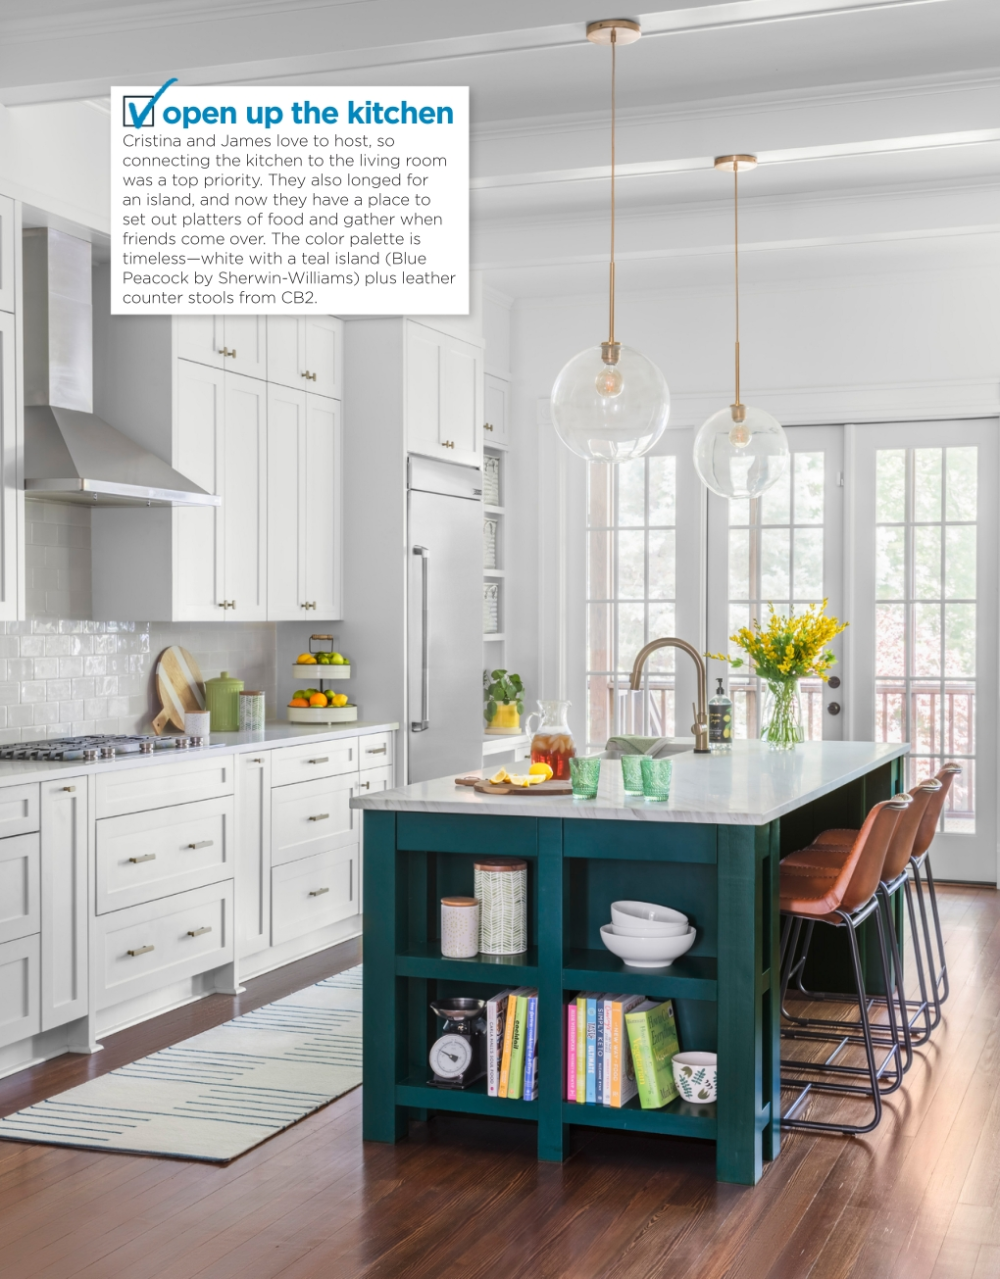 Pin By Michelle Ann Johnson On Kitchens Teal Kitchen Teal Kitchen Decor Green Kitchen Island